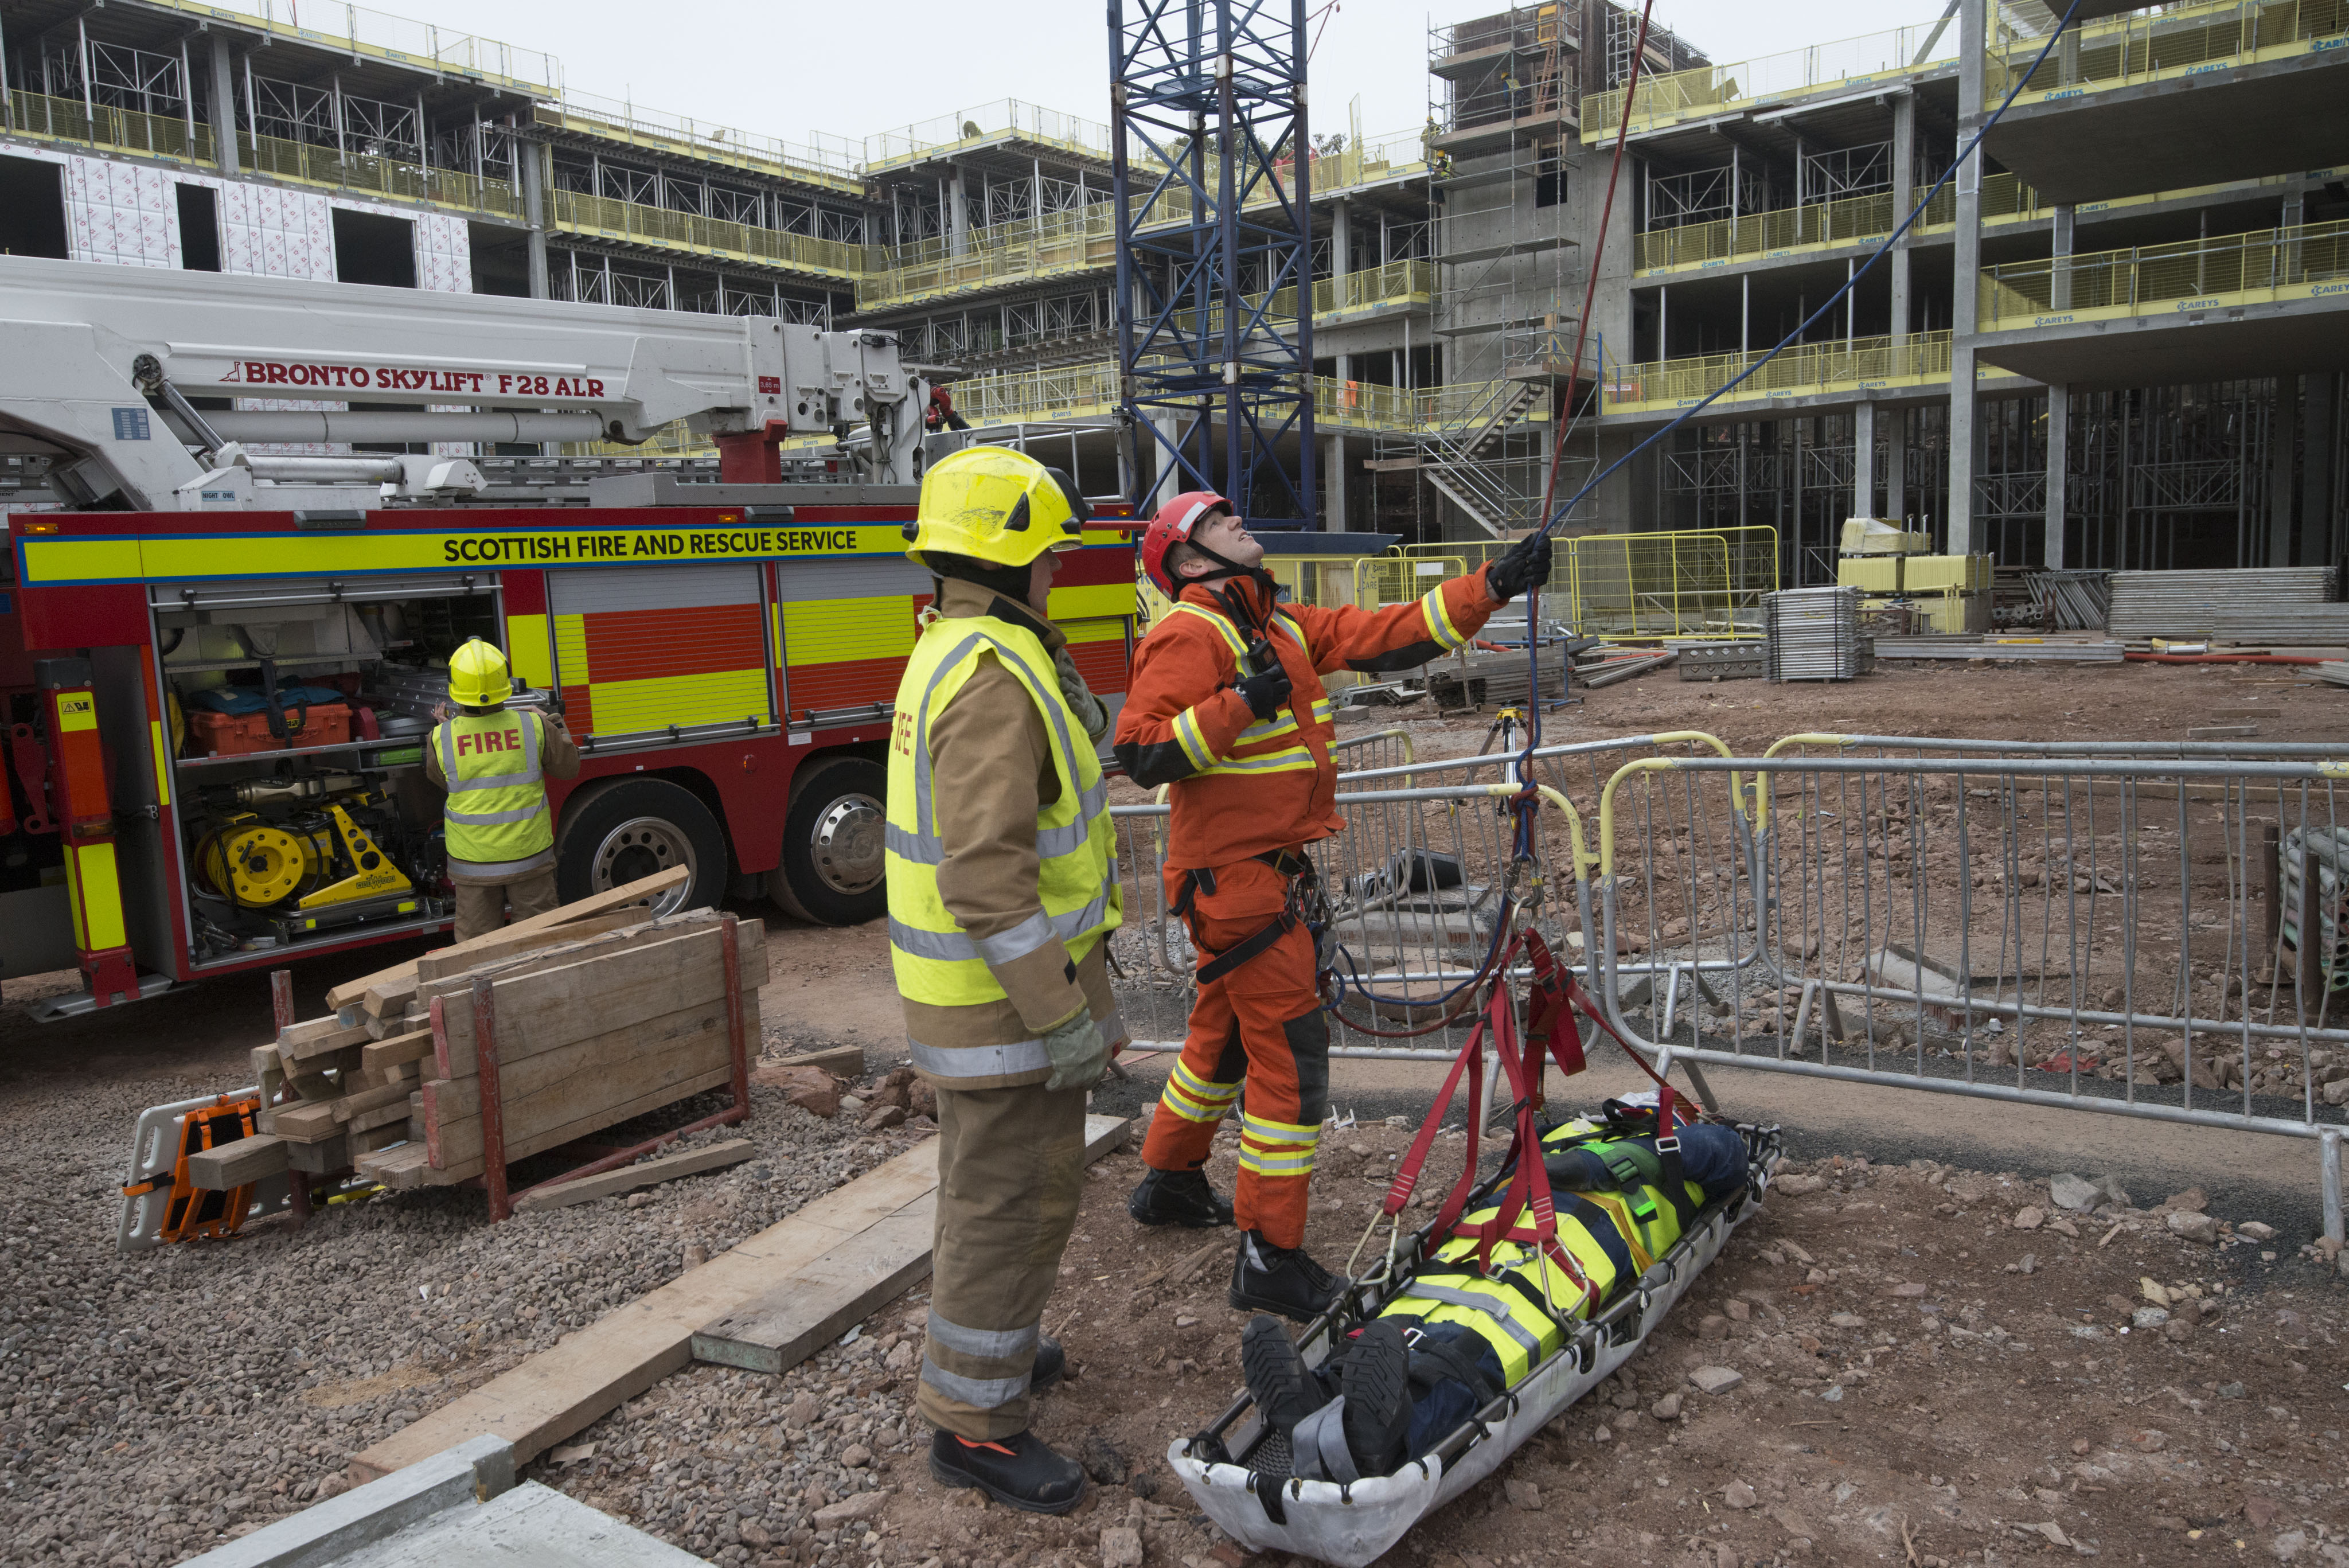 SFRS take training opportunity after Robertson construction offer